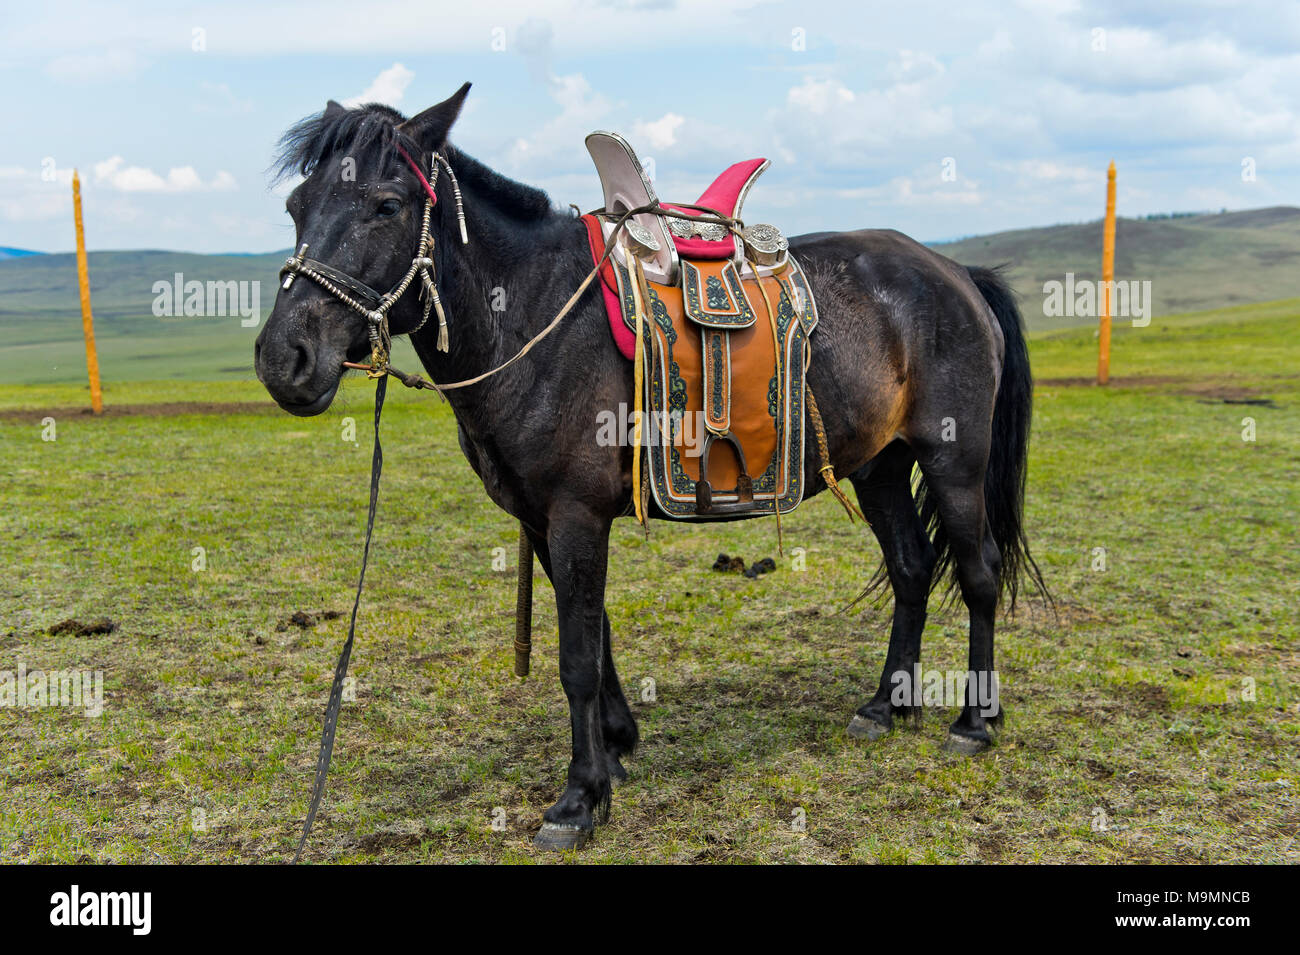 Tamed horse of a nomad with traditional saddle in the steppe, Mongolia - Stock Image